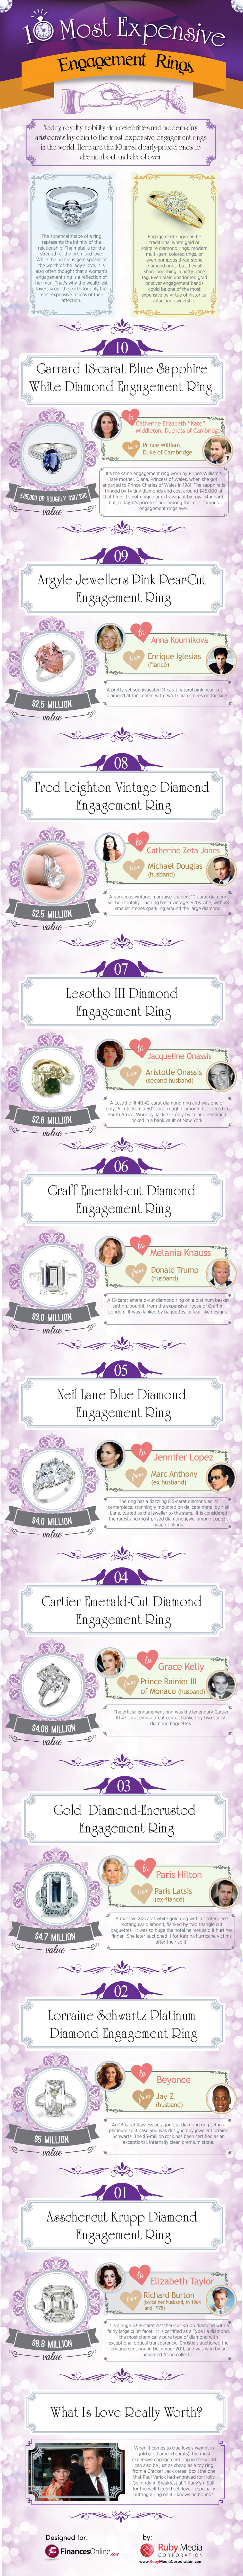 10 Most Expensive and Beautiful Engagement Rings: Beyonce, Surprisingly, Is Not The Celebrity At The Top Infographic